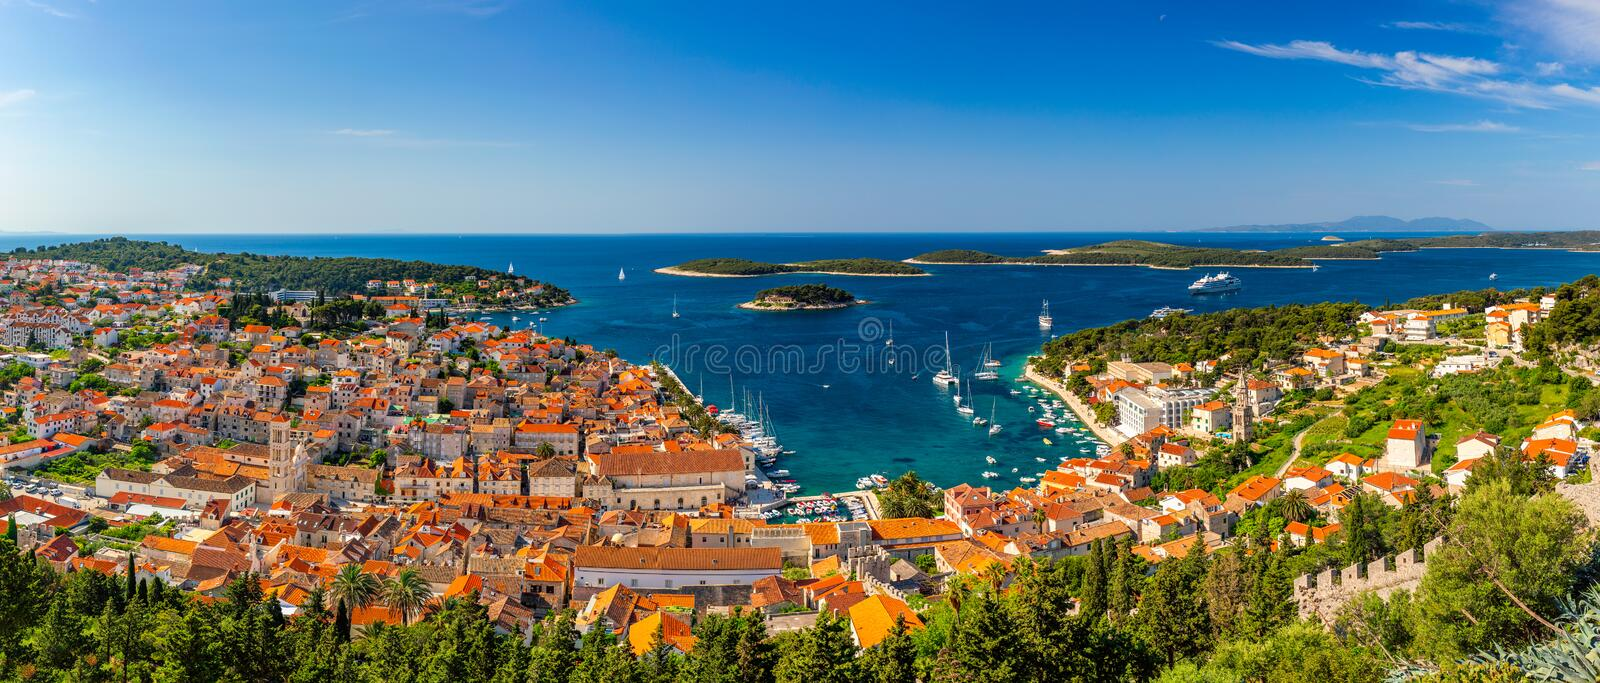 Panorama view at amazing archipelago in front of town Hvar, Croatia. Harbor of old Adriatic island town Hvar. Amazing Hvar city on stock photos